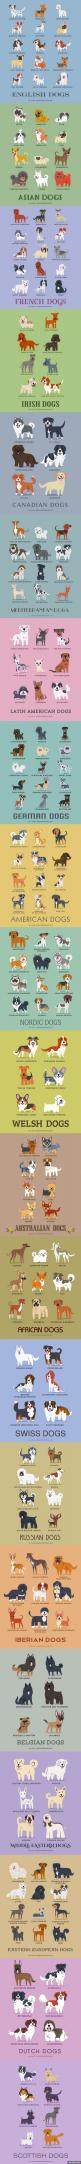 Dogs of the world, unite!: Doggie, Beagle Dog, Dog Breeds, Puppy Breed, Animal, Scottish Dog